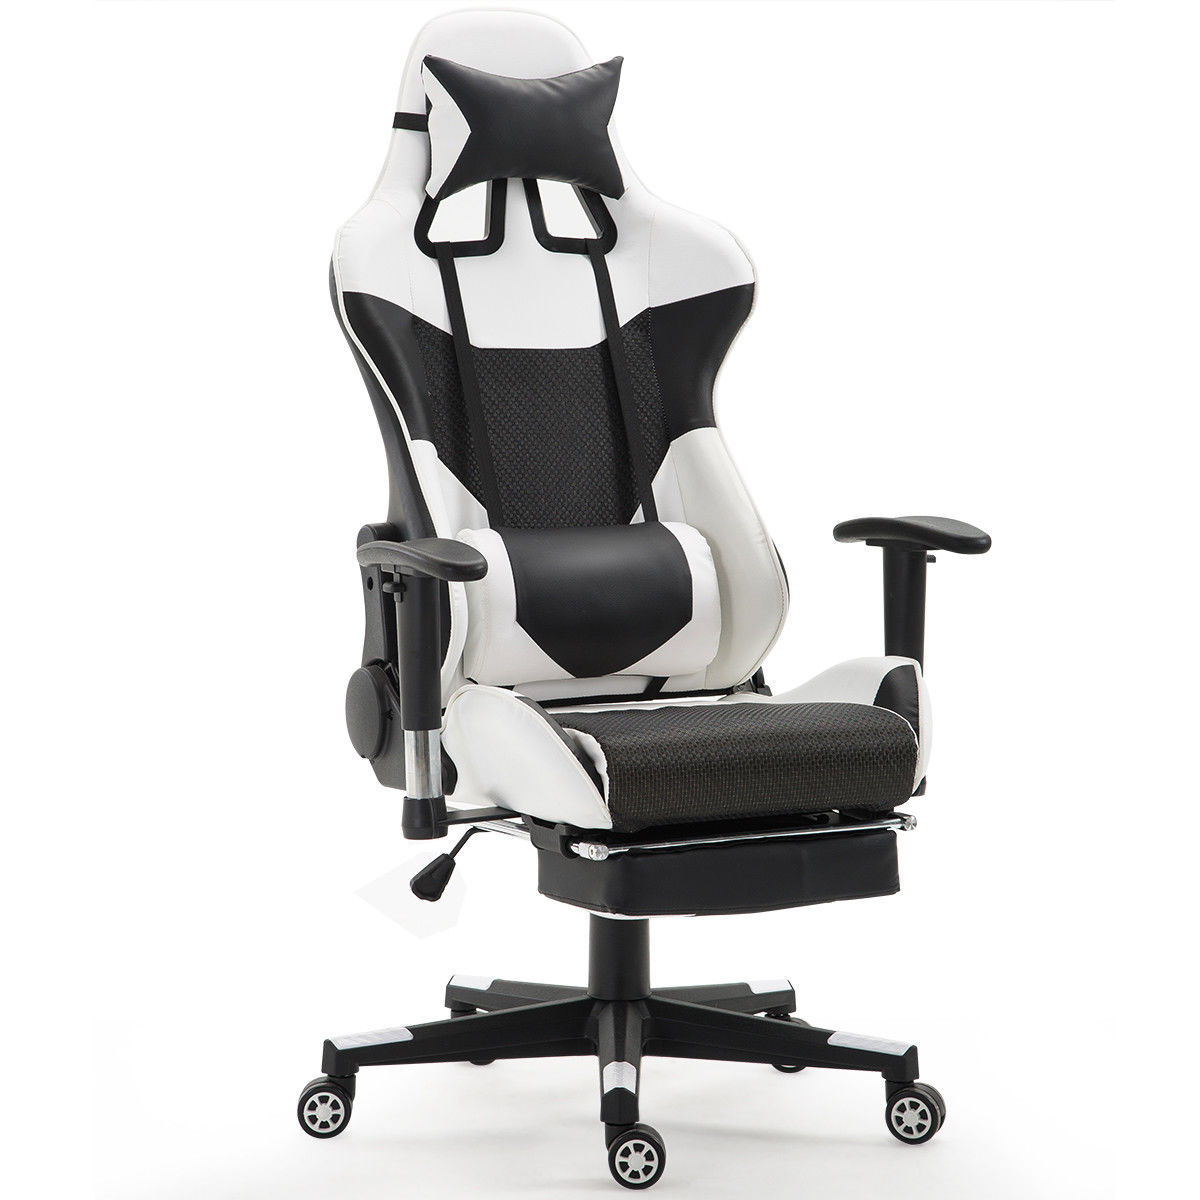 Giantex Ergonomic Adjustable Gaming Chair Modern High Back